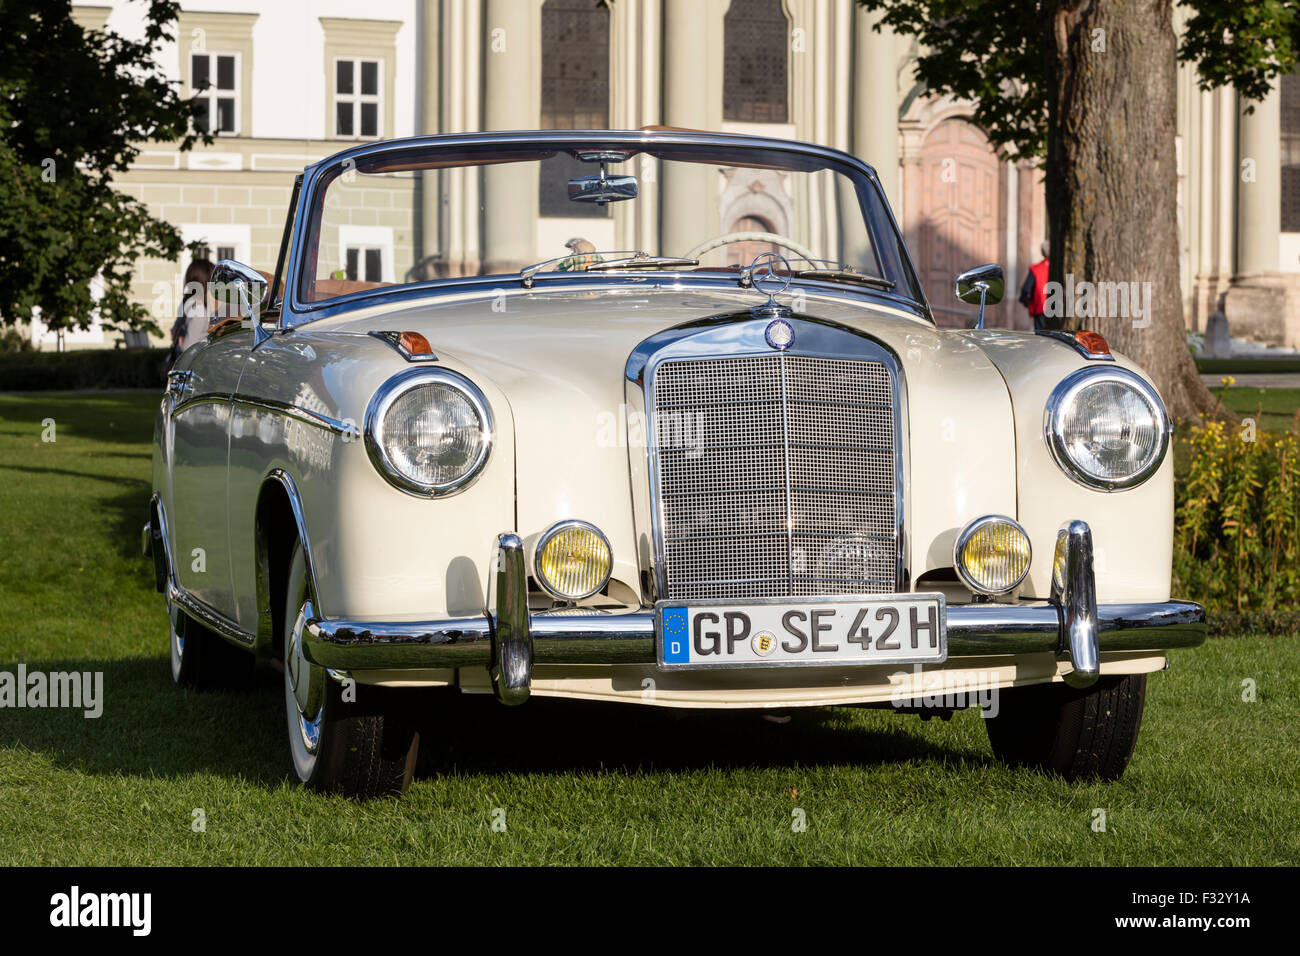 Mercedes Benz Vintage Car Stock Photo Royalty Free Image